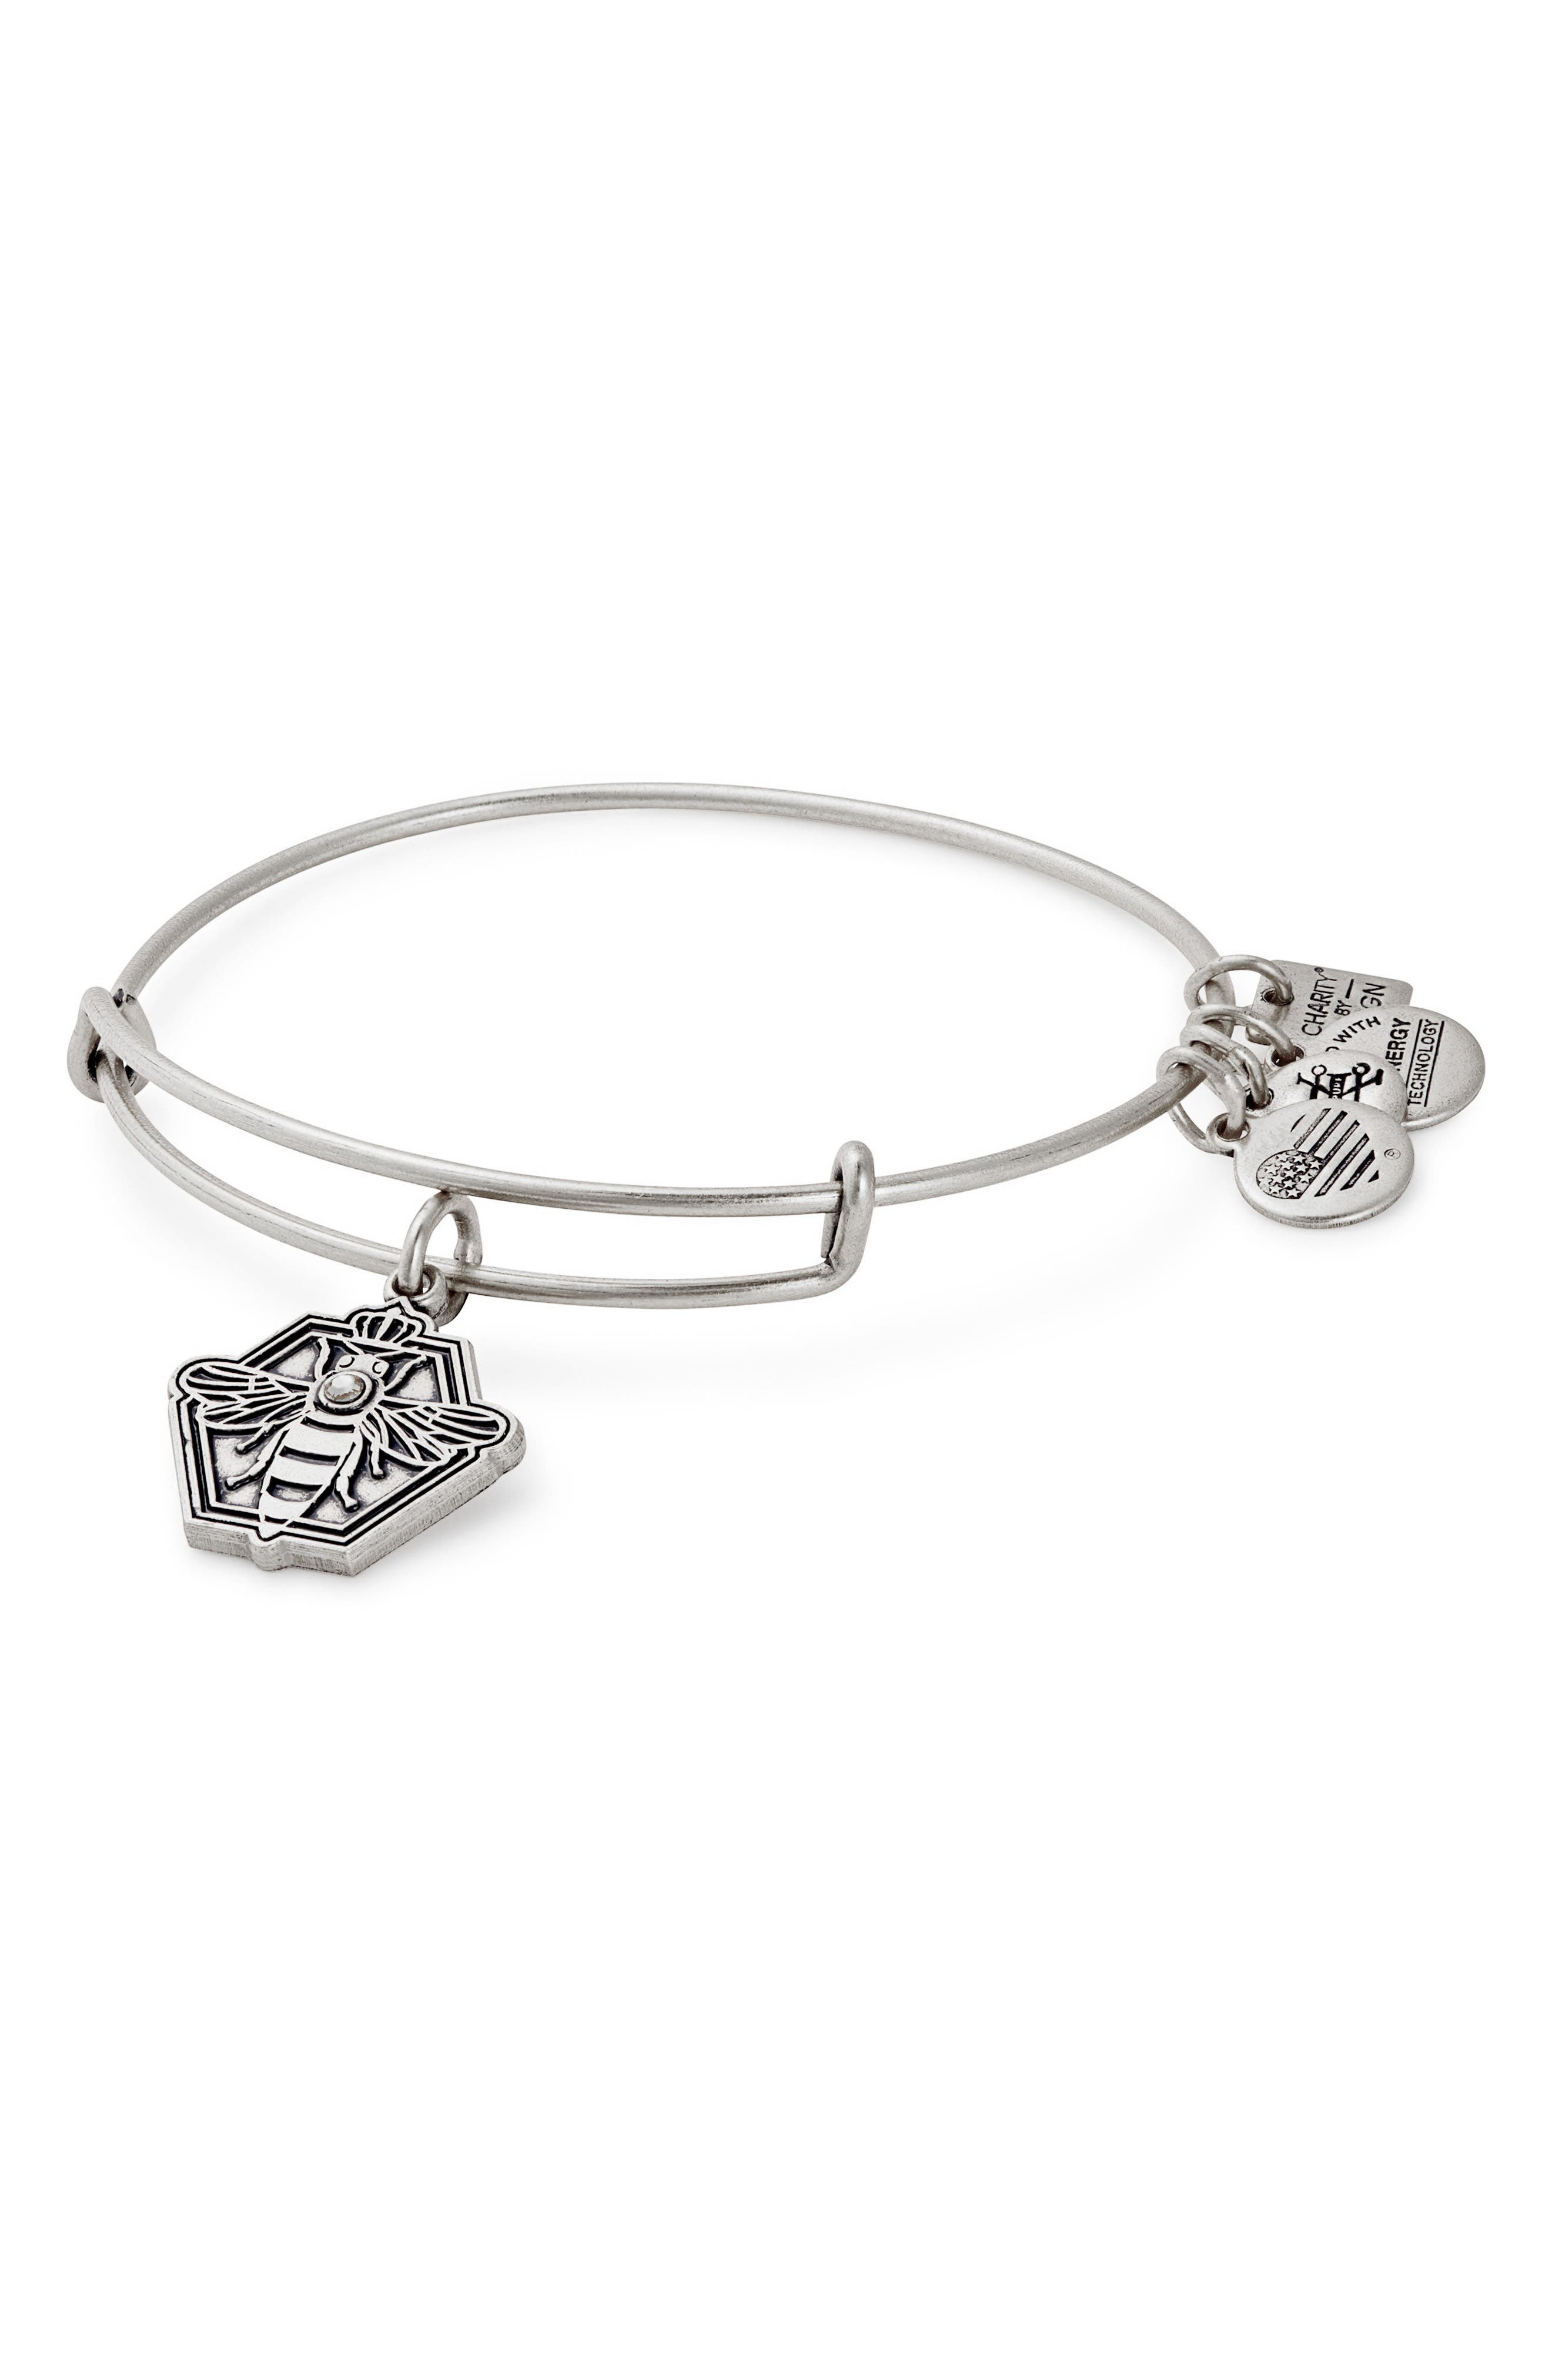 Charity by Design Queen Bee Adjustable Bangle,                             Main thumbnail 1, color,